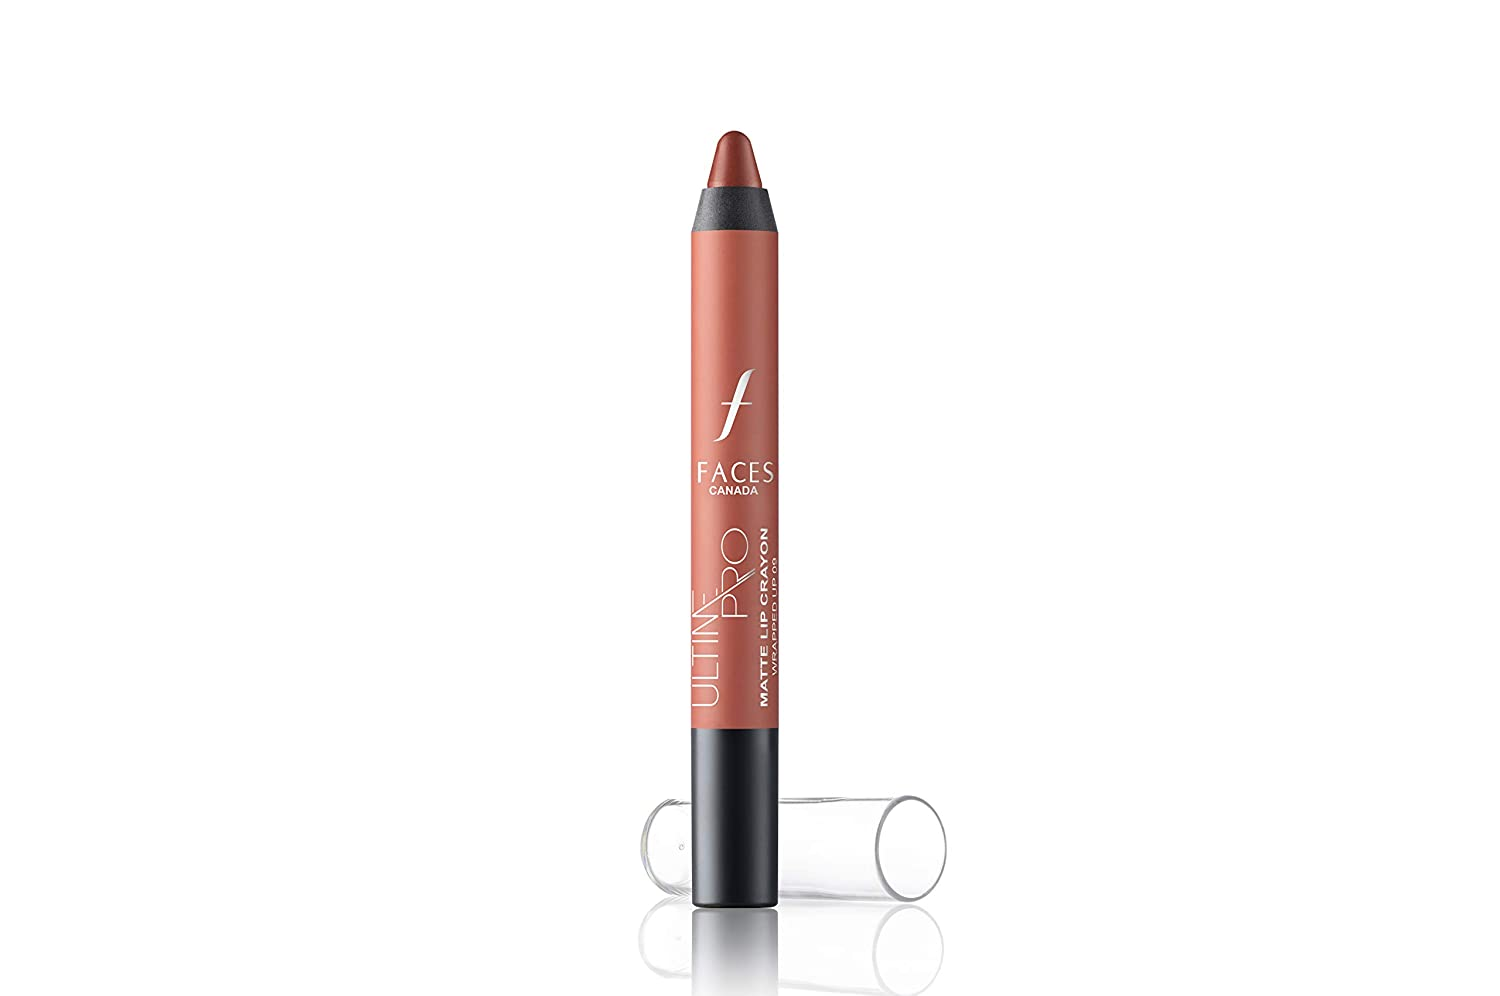 Faces Ultime Pro Matte Lip Crayon